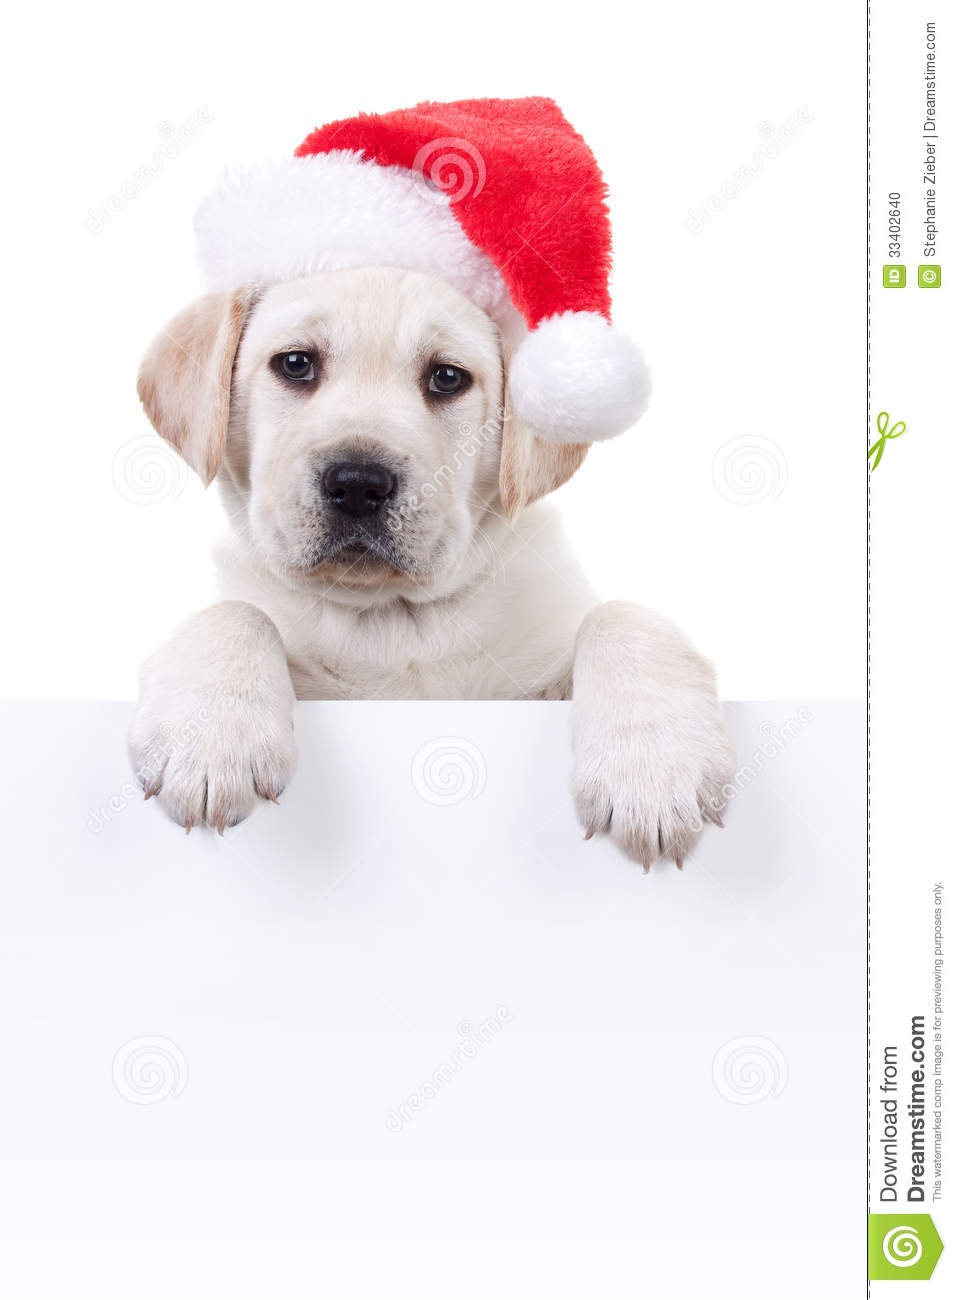 cute picture ideas for christmas cards - Christmas Banner Dog Stock Image